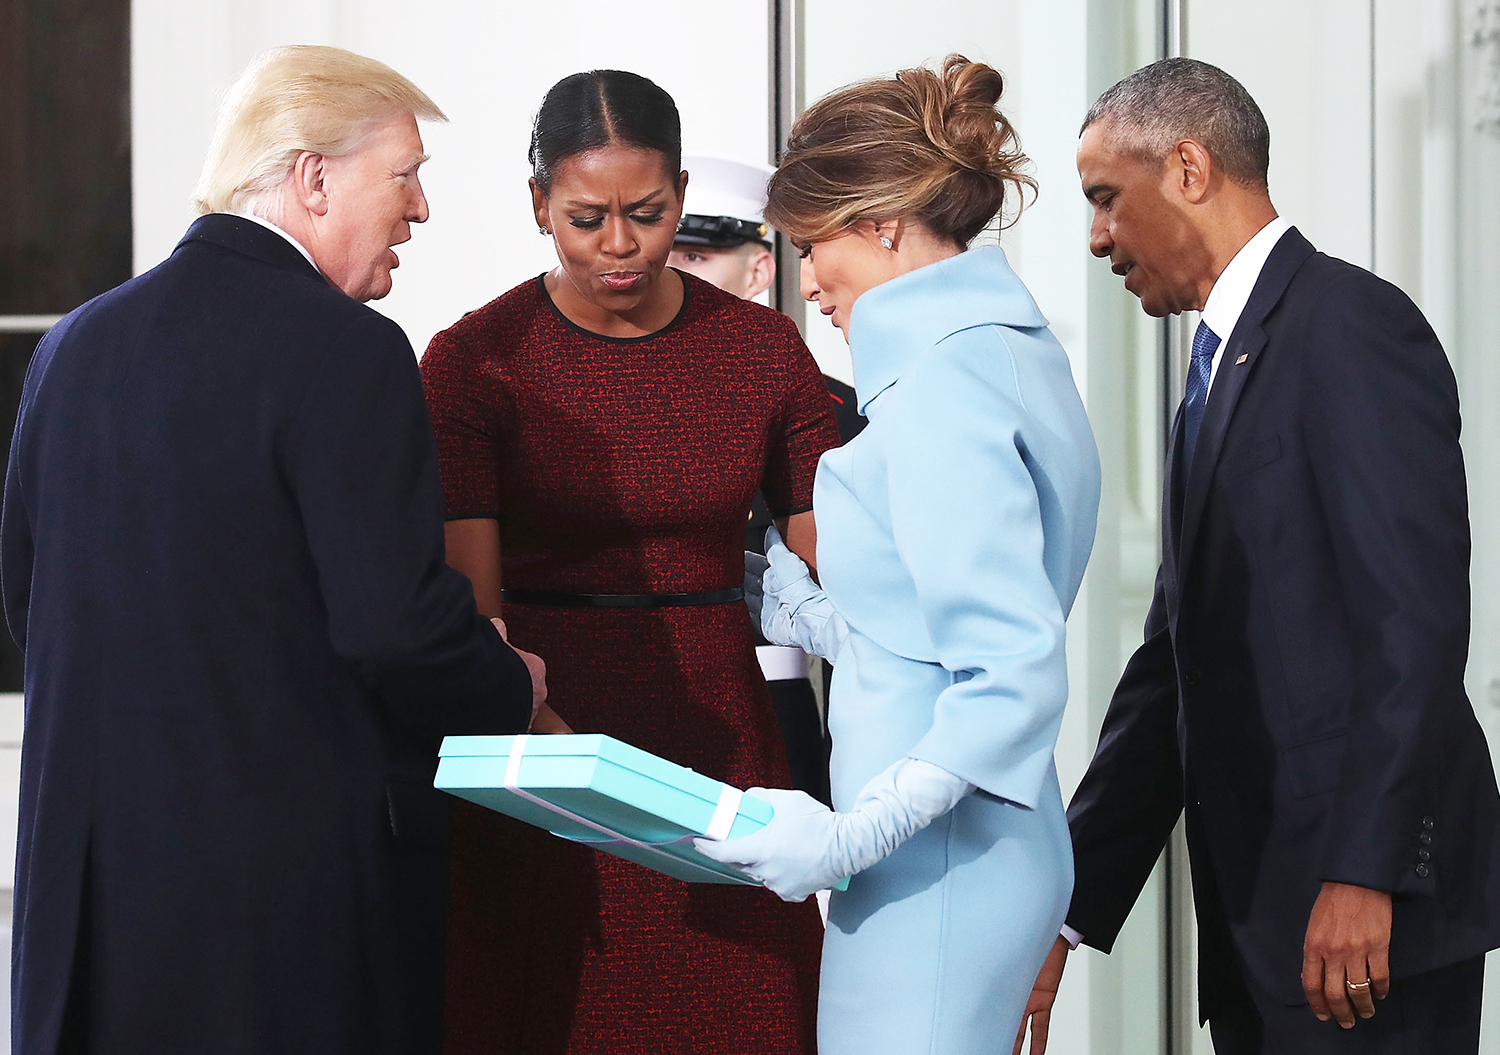 Donald Trump,and Melania Trump, are greeted by President Barack Obama and his wife first lady Michelle Obama, upon arriving at the White House on January 20, 2017 in Washington, DC.